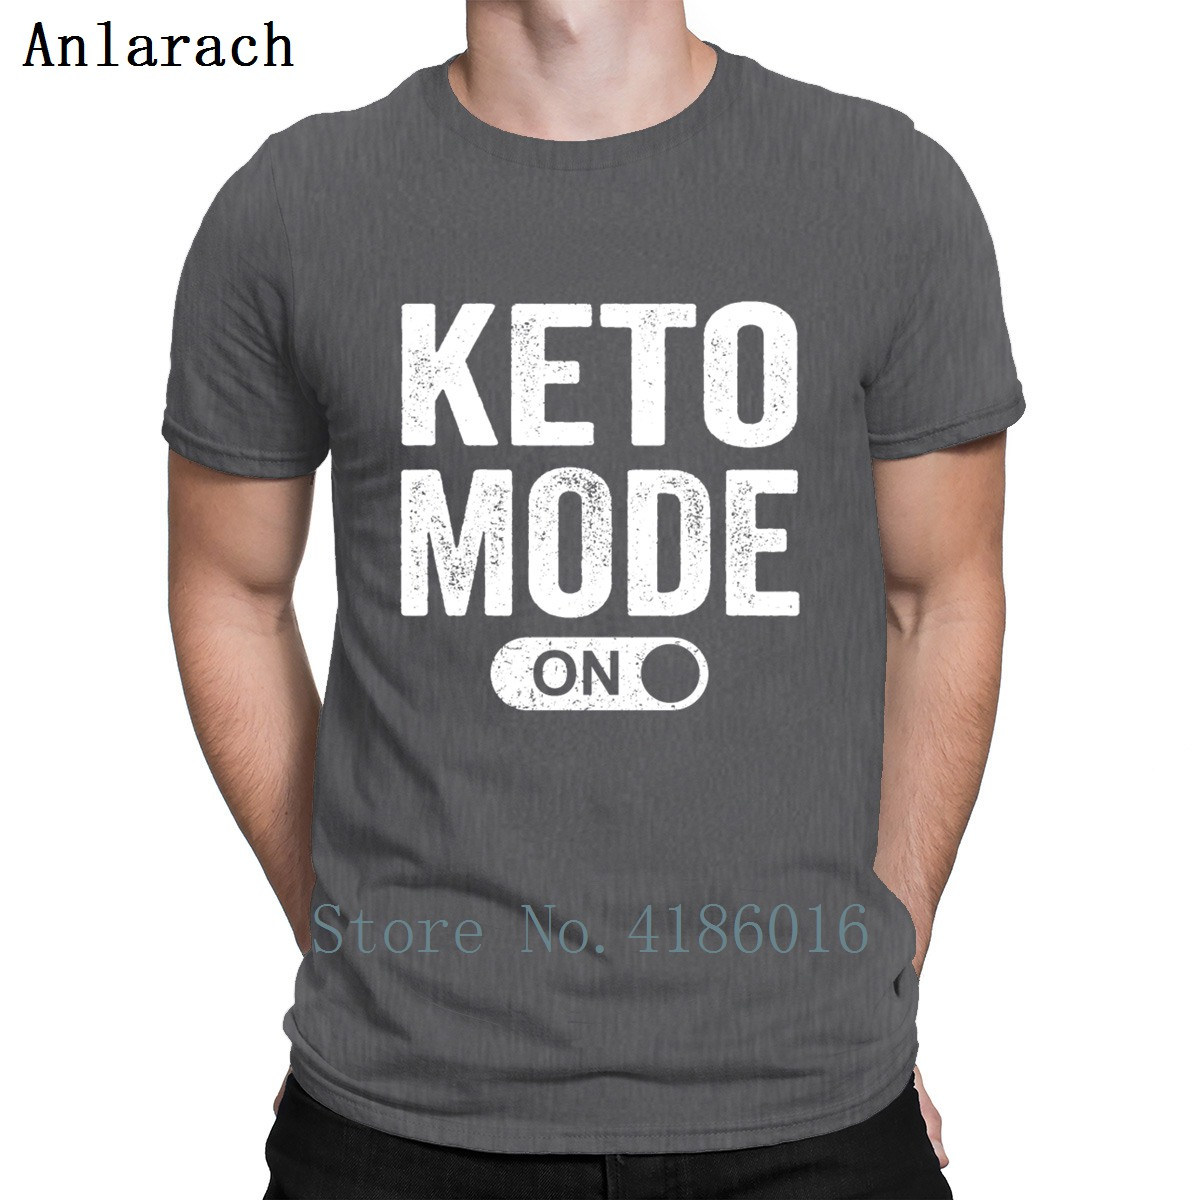 Keto Mode On T Shirt Latest Personality Fit Great Tshirt Men Summer Style Leisure Cotton Pop Top Tee